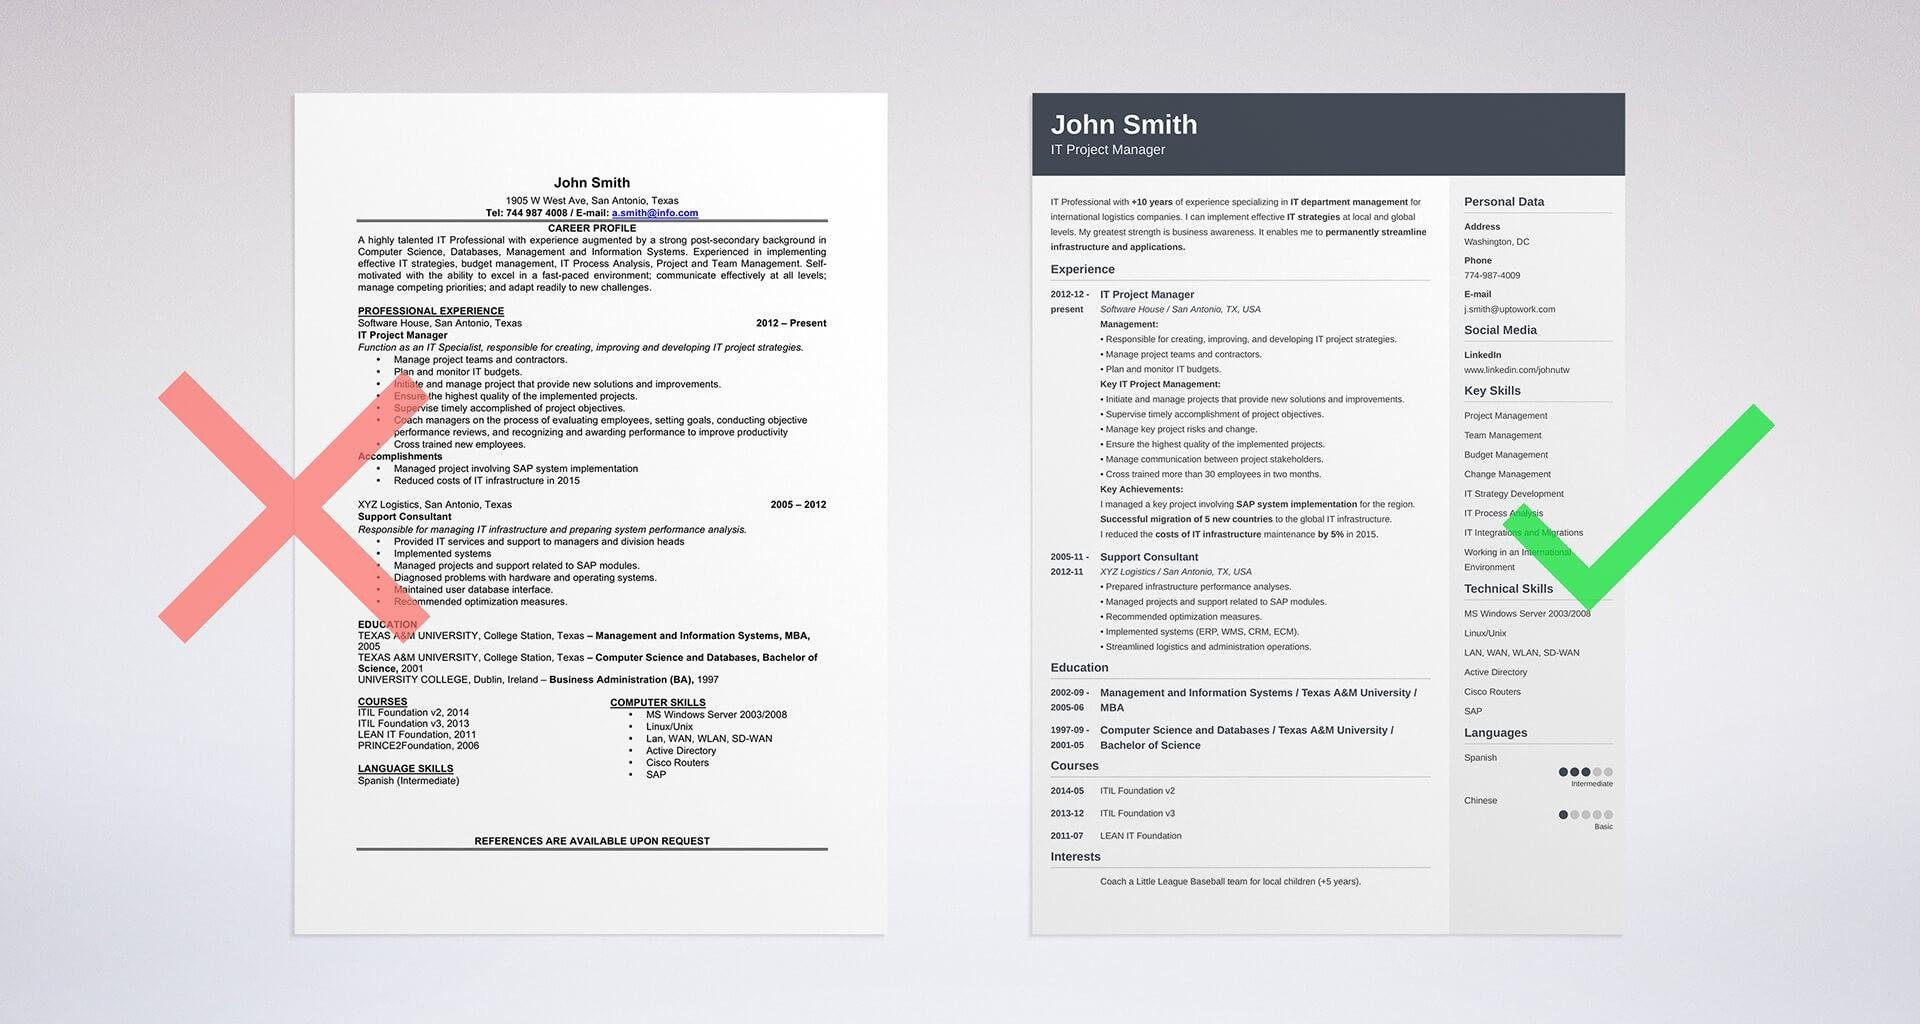 sample resume template see 20 other templates and create your resume here - How To Make The Best Resume Possible